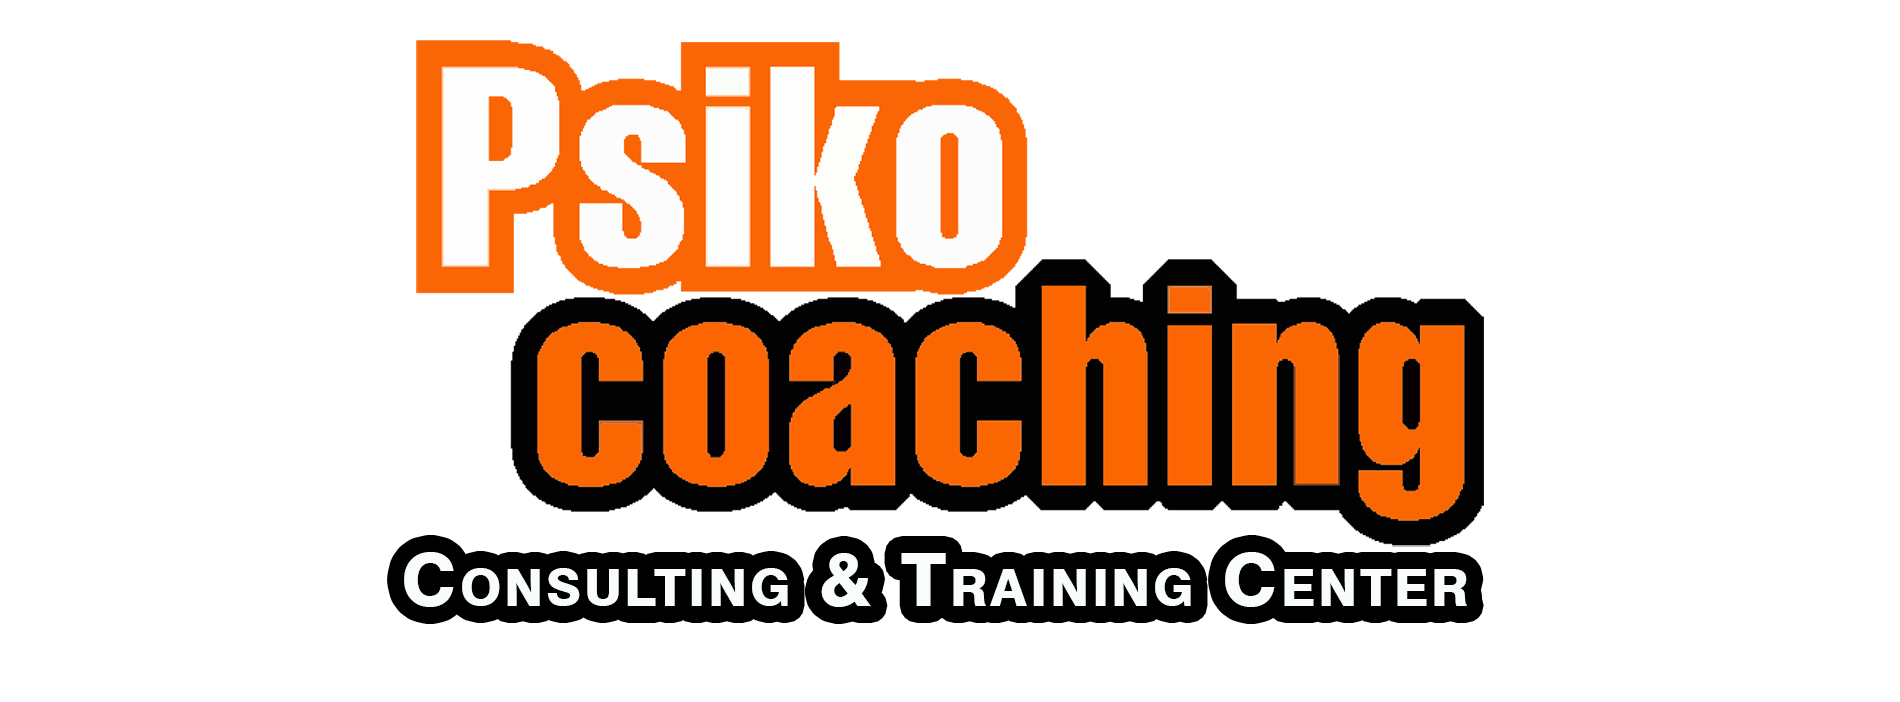 psikocoaching CTC 1900